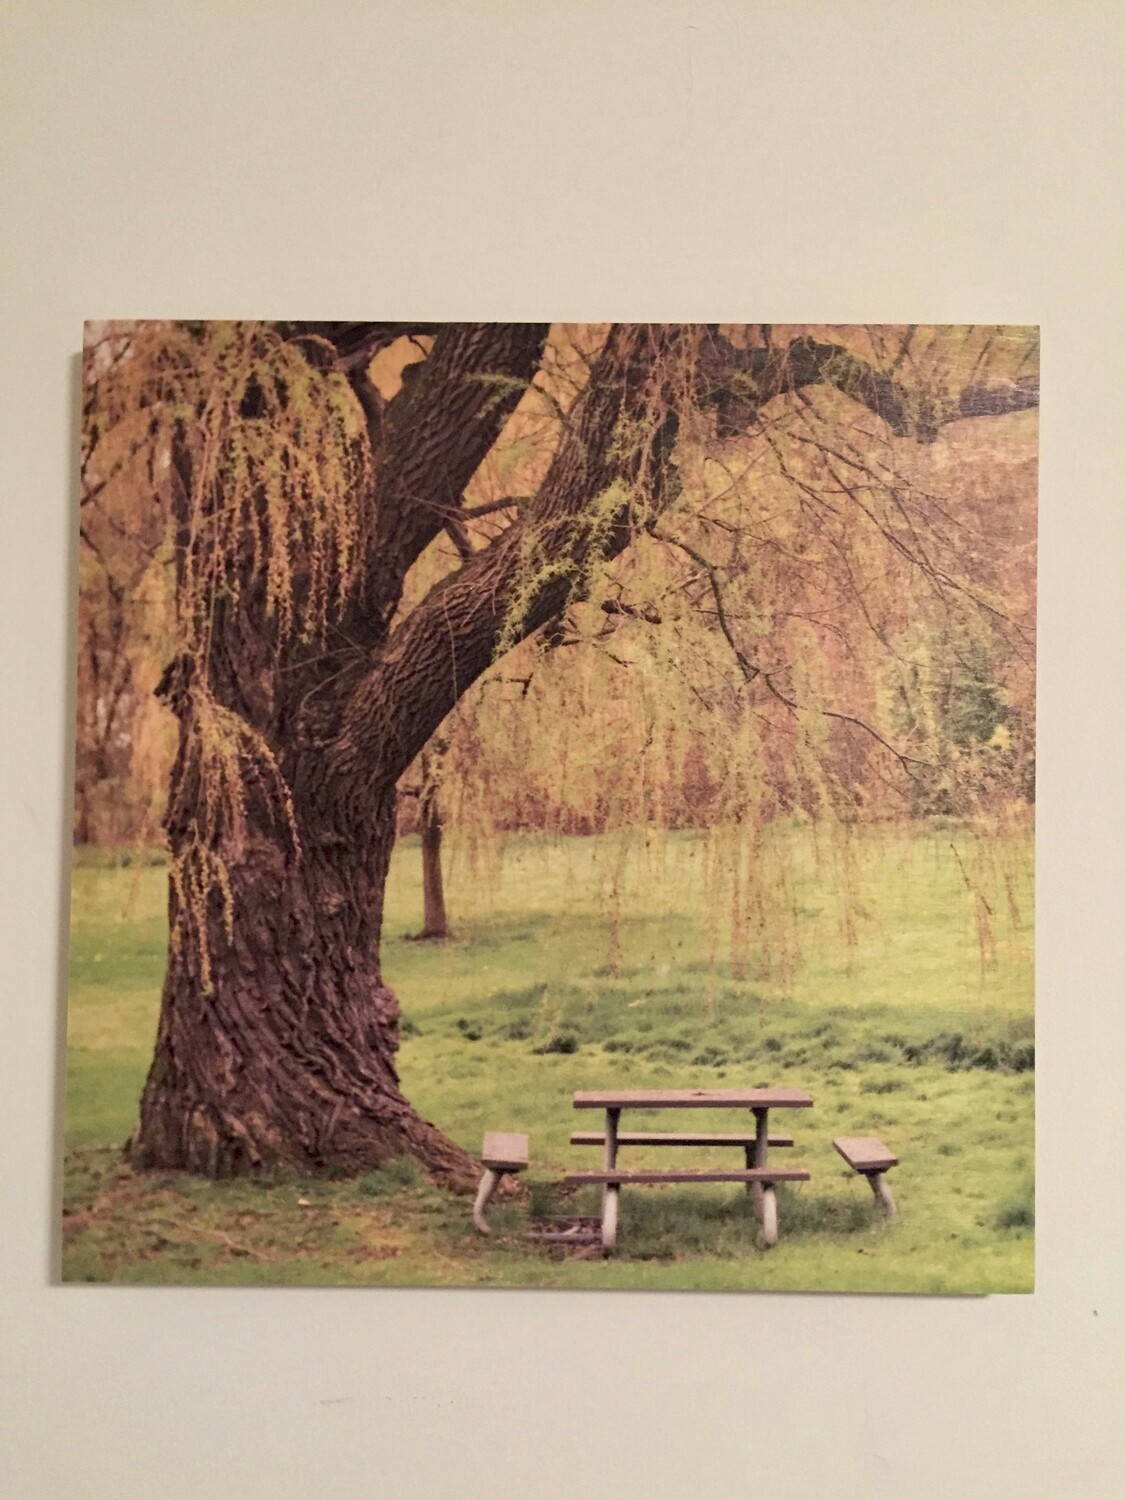 Picnic Under the Weeping Willow